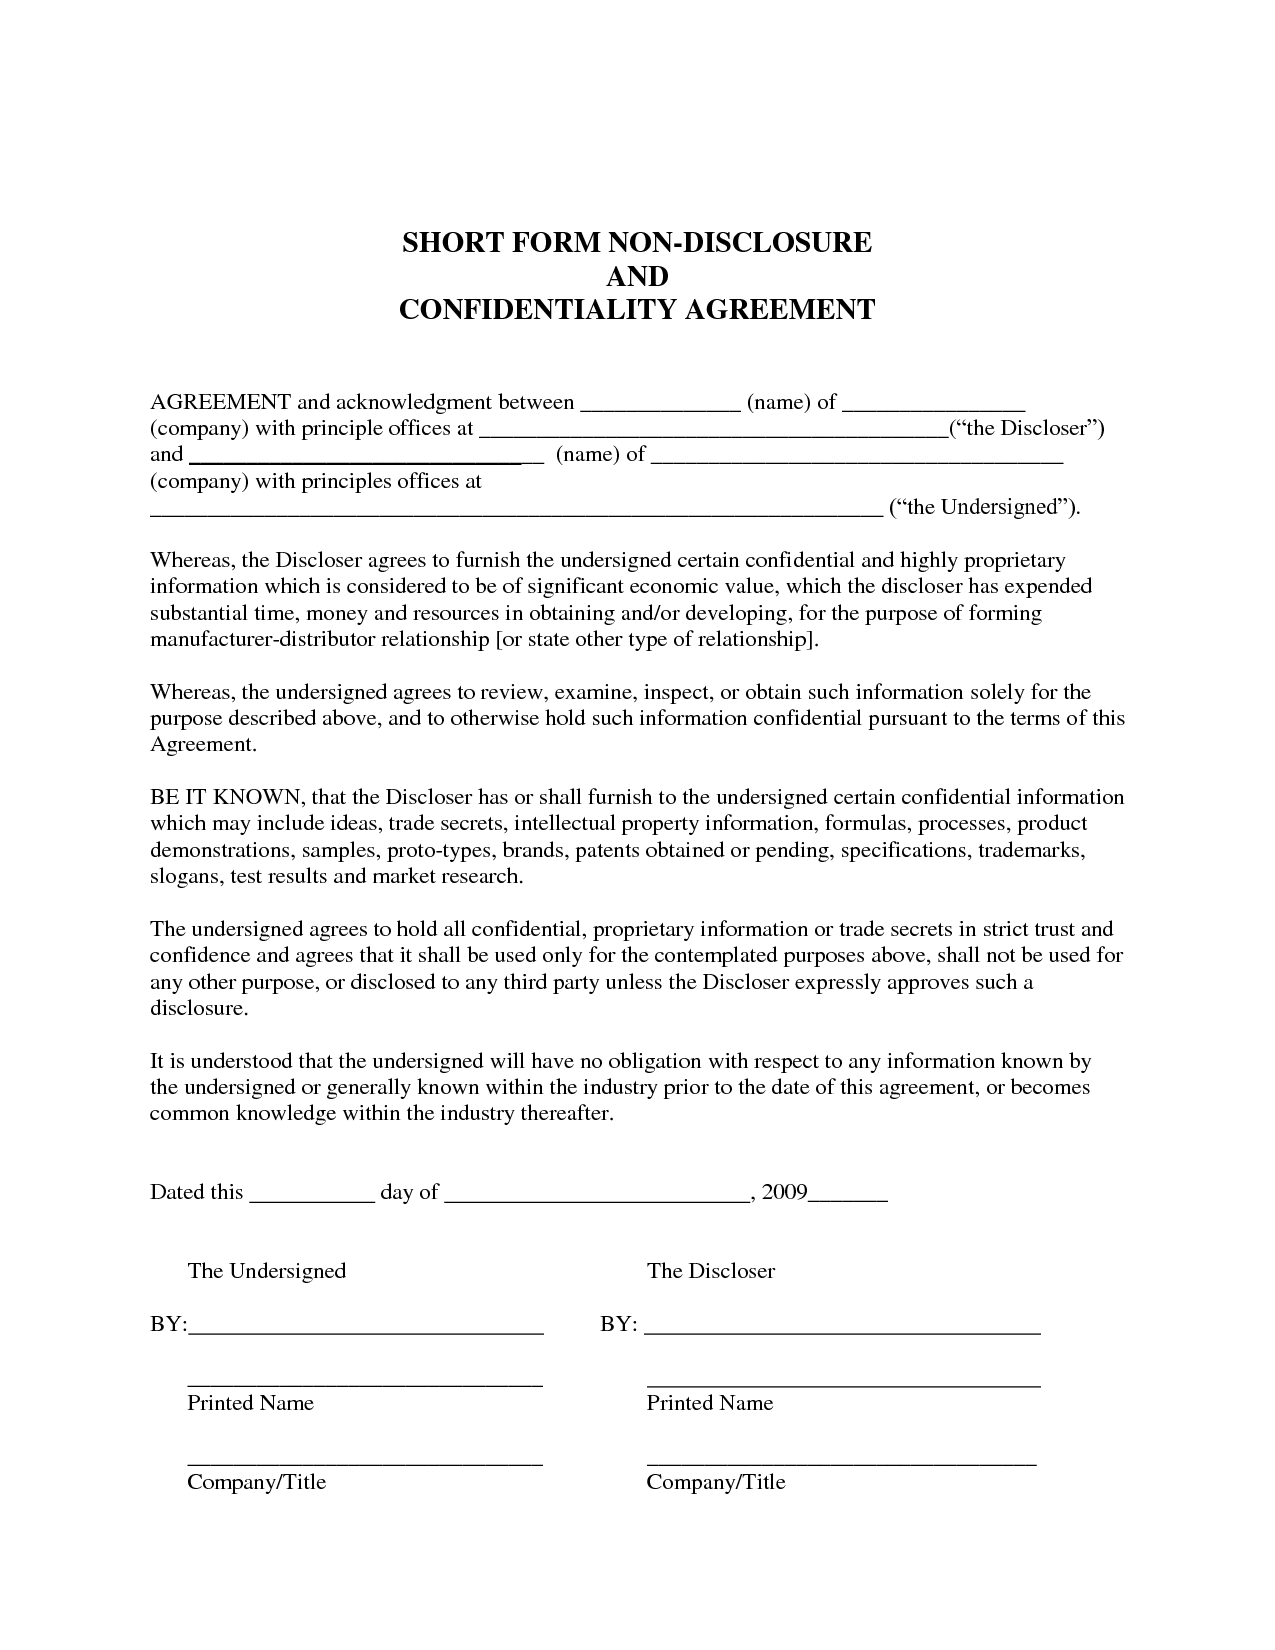 Non Disclosure Agreement Sample Free Printable Documents Non Disclosure Agreement Contract Template Disclosure